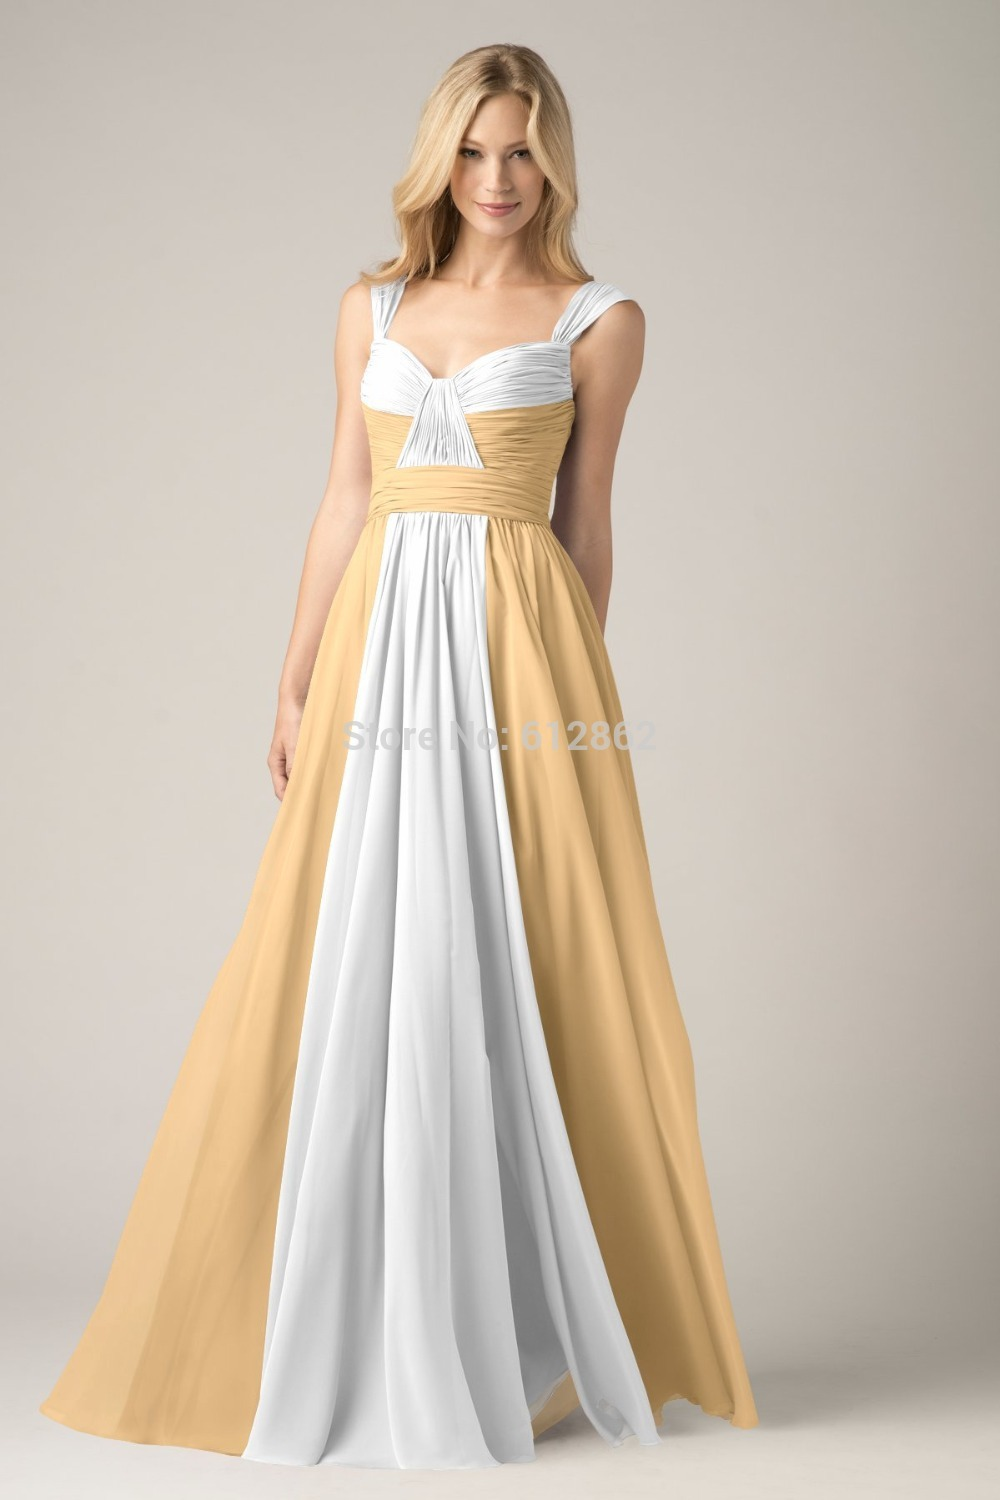 Popular White Gold Prom Dresses-Buy Cheap White Gold Prom Dresses ...